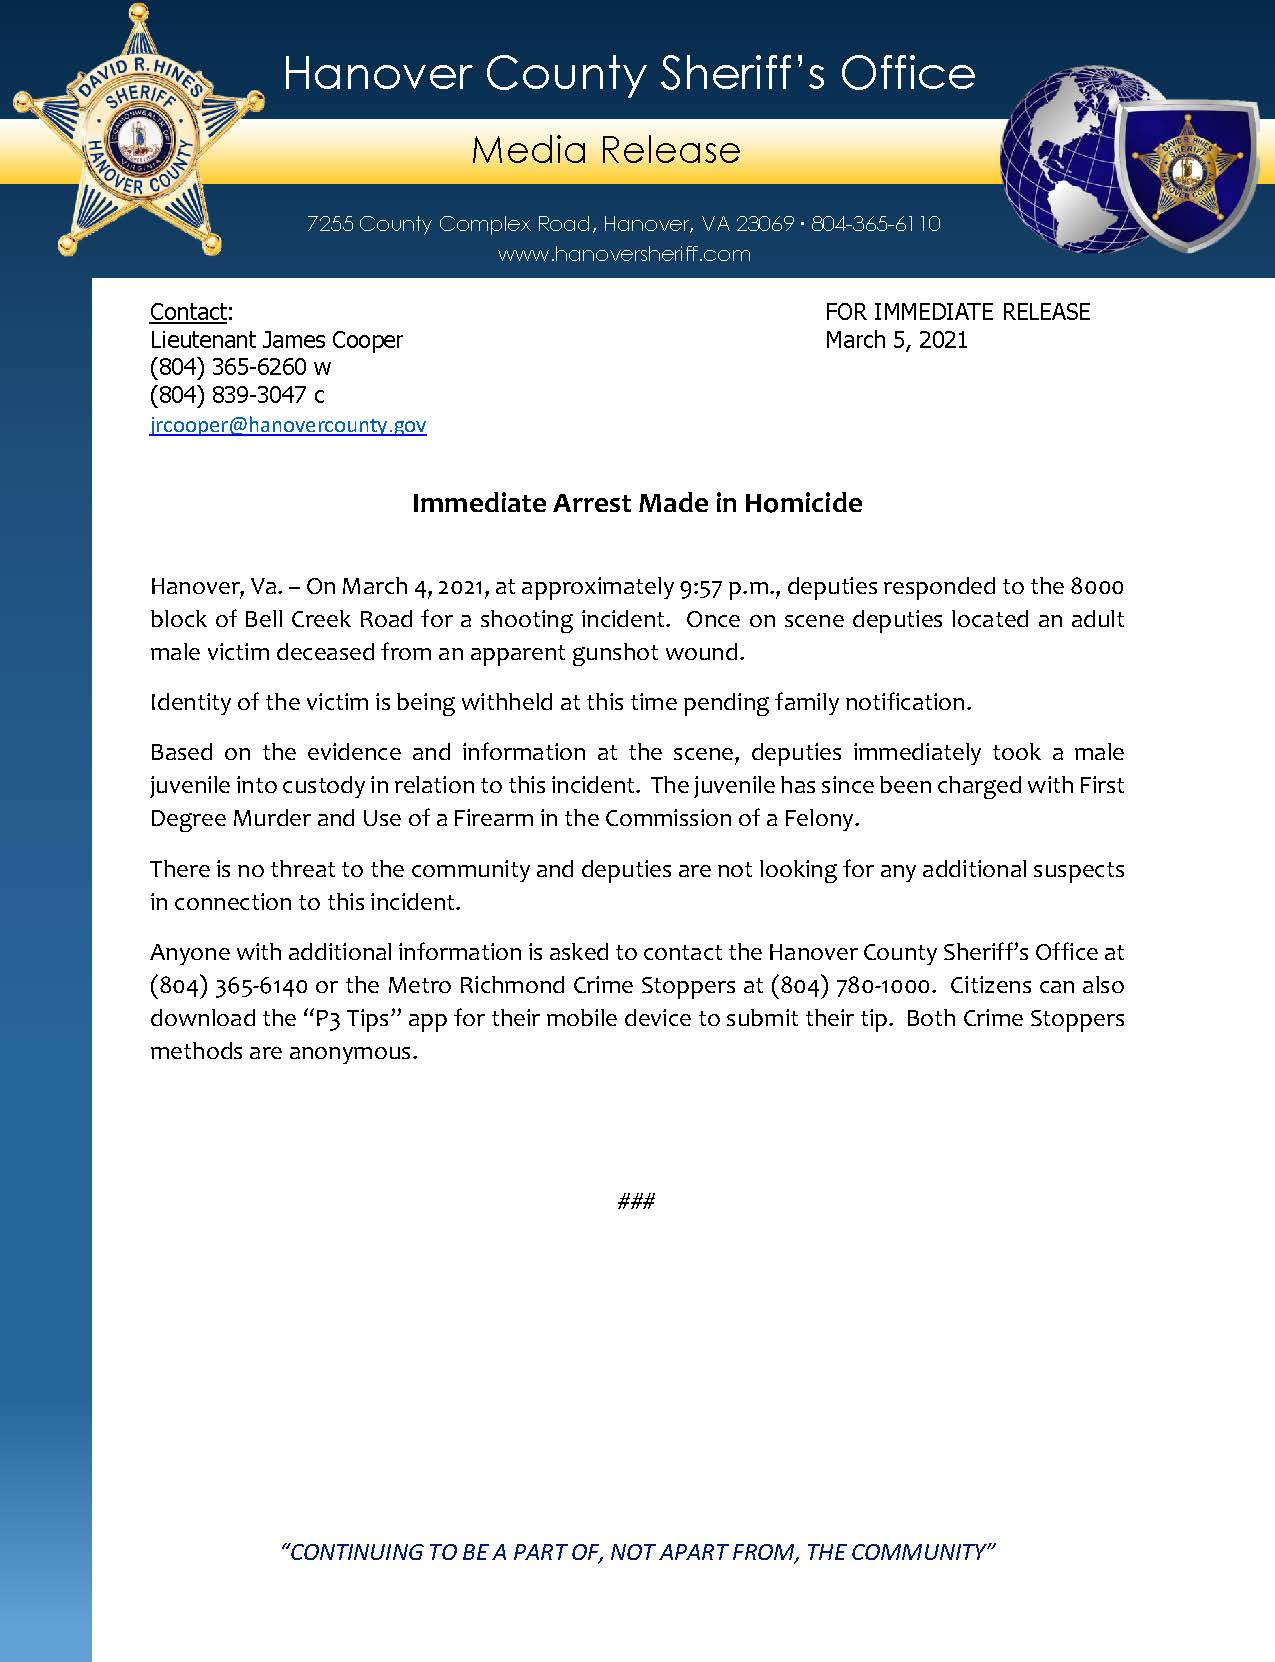 HCSO Media Release - Immediate Arrest Made in Homicide 3.5.21